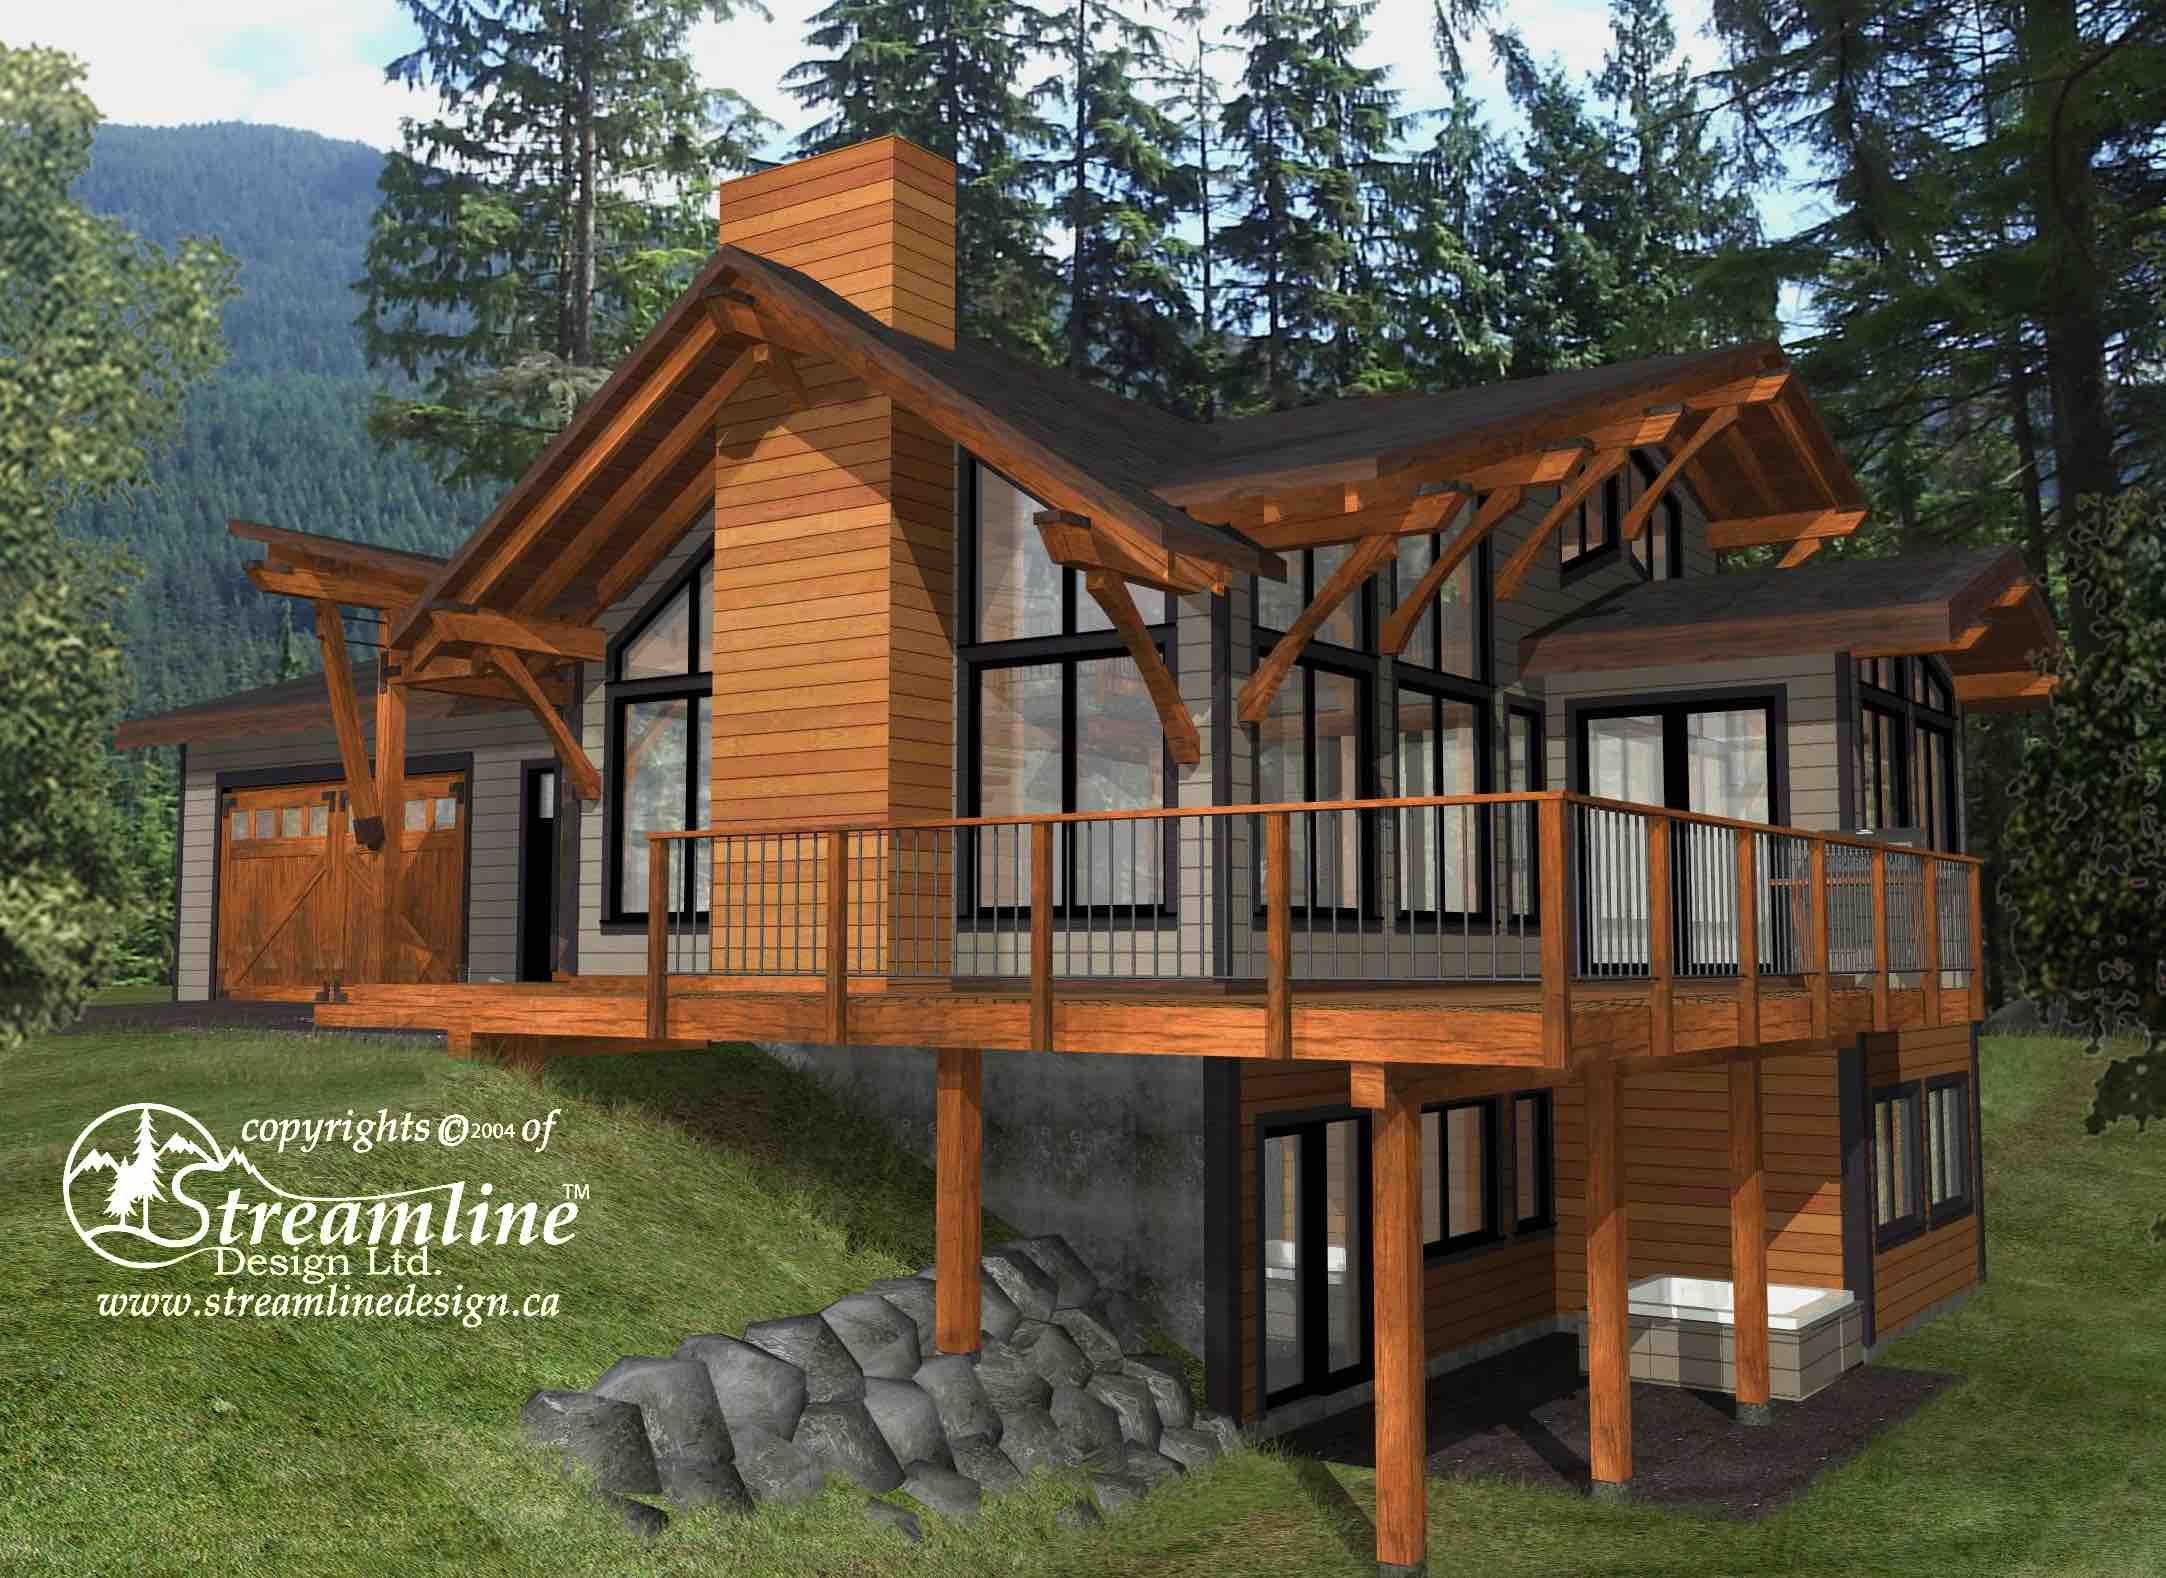 This Elegant Three Story Timber Frame Log Home Is A Great